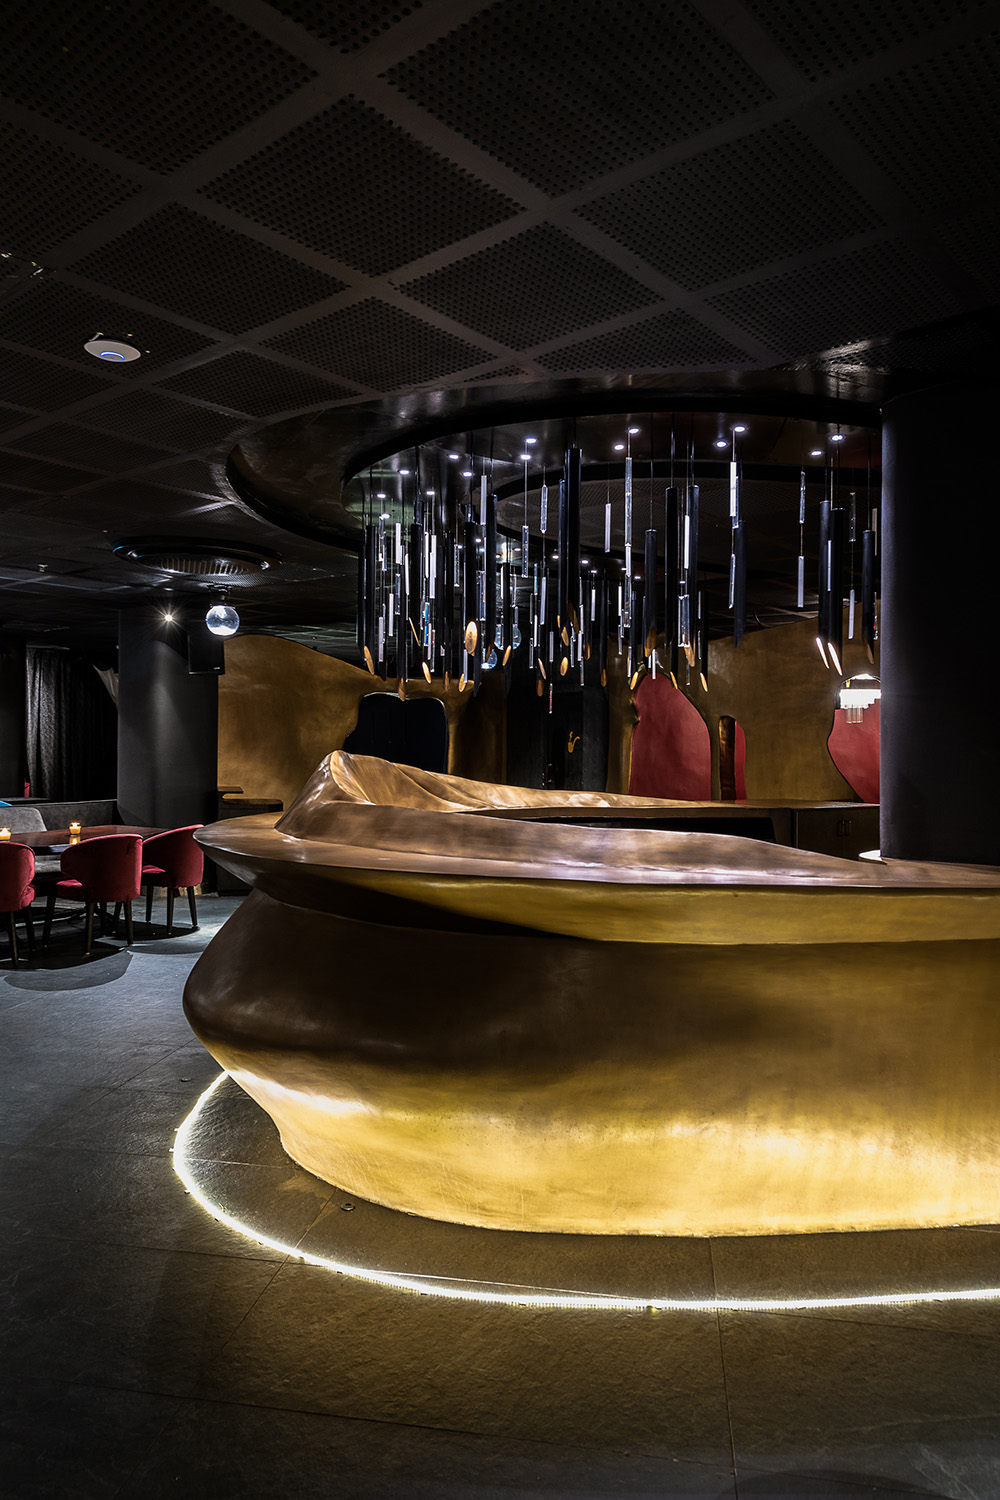 'The Bar' is design as the visual identity for the space. ©Photographix | Sebastian + Ira